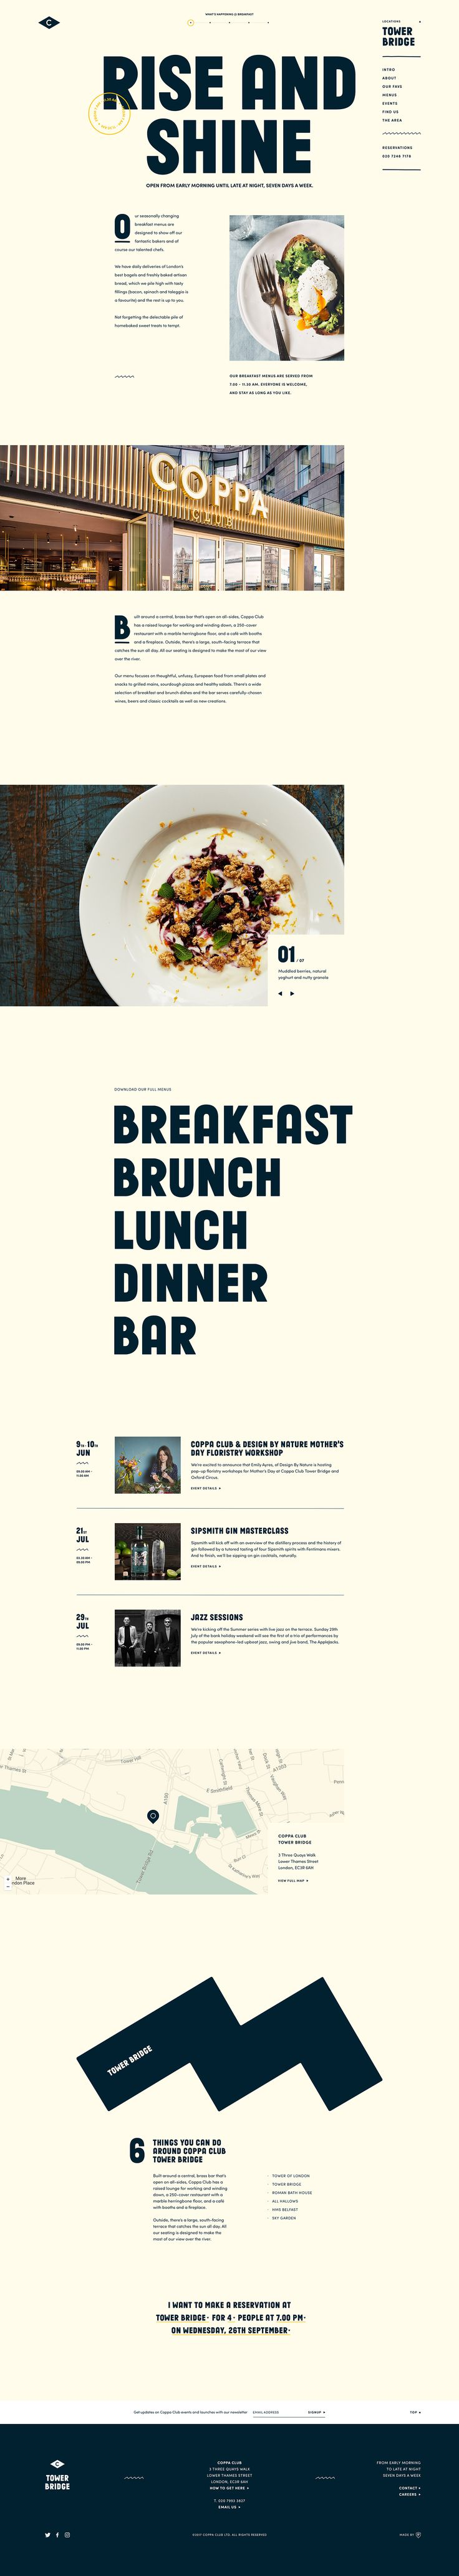 CC Location Breakfast — Ui design concept and visual identity by ToyFight©